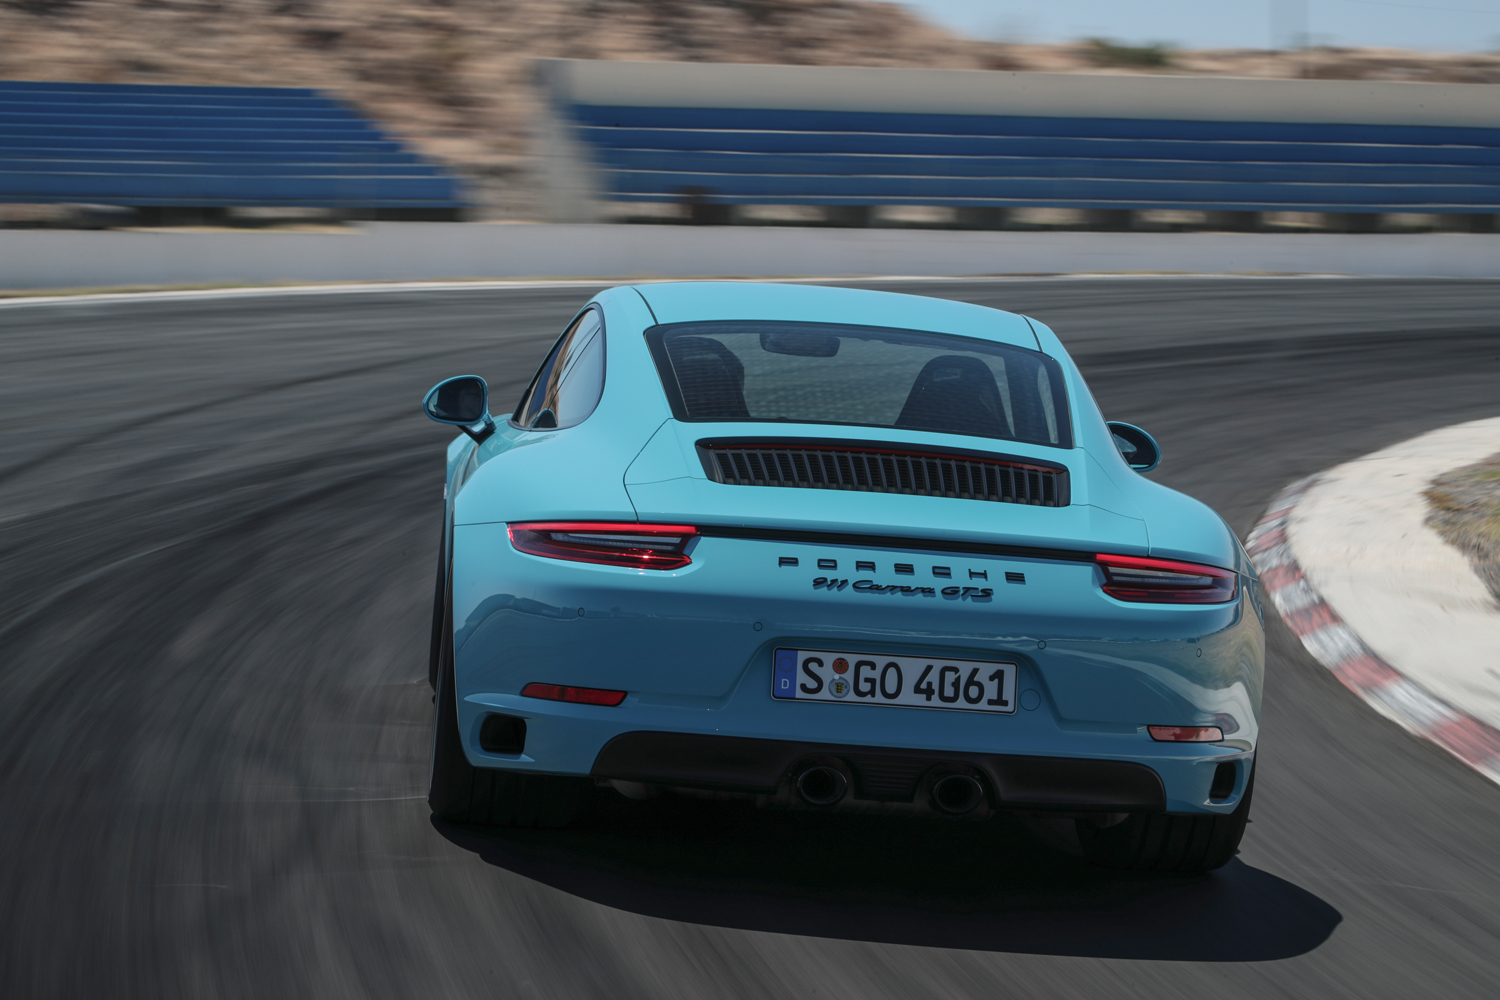 911 Carrera Gts >> Porsche 911 Carrera Gts Review The Most Thrilling Drive Under 150k